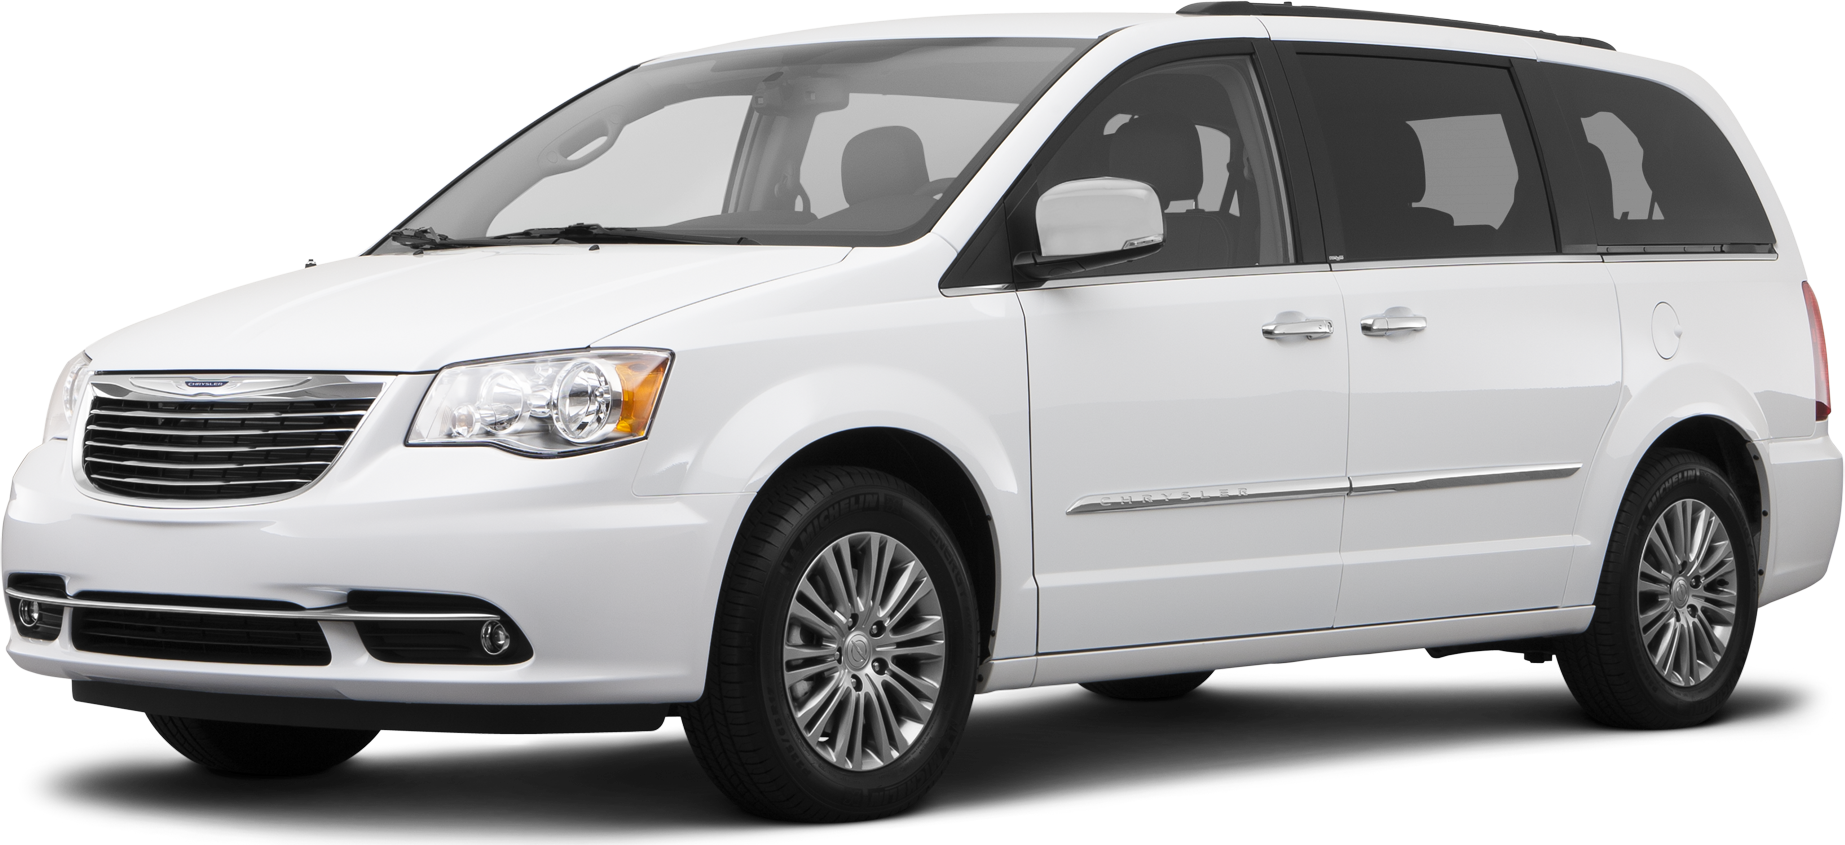 Chrysler Town & Country oil capacity